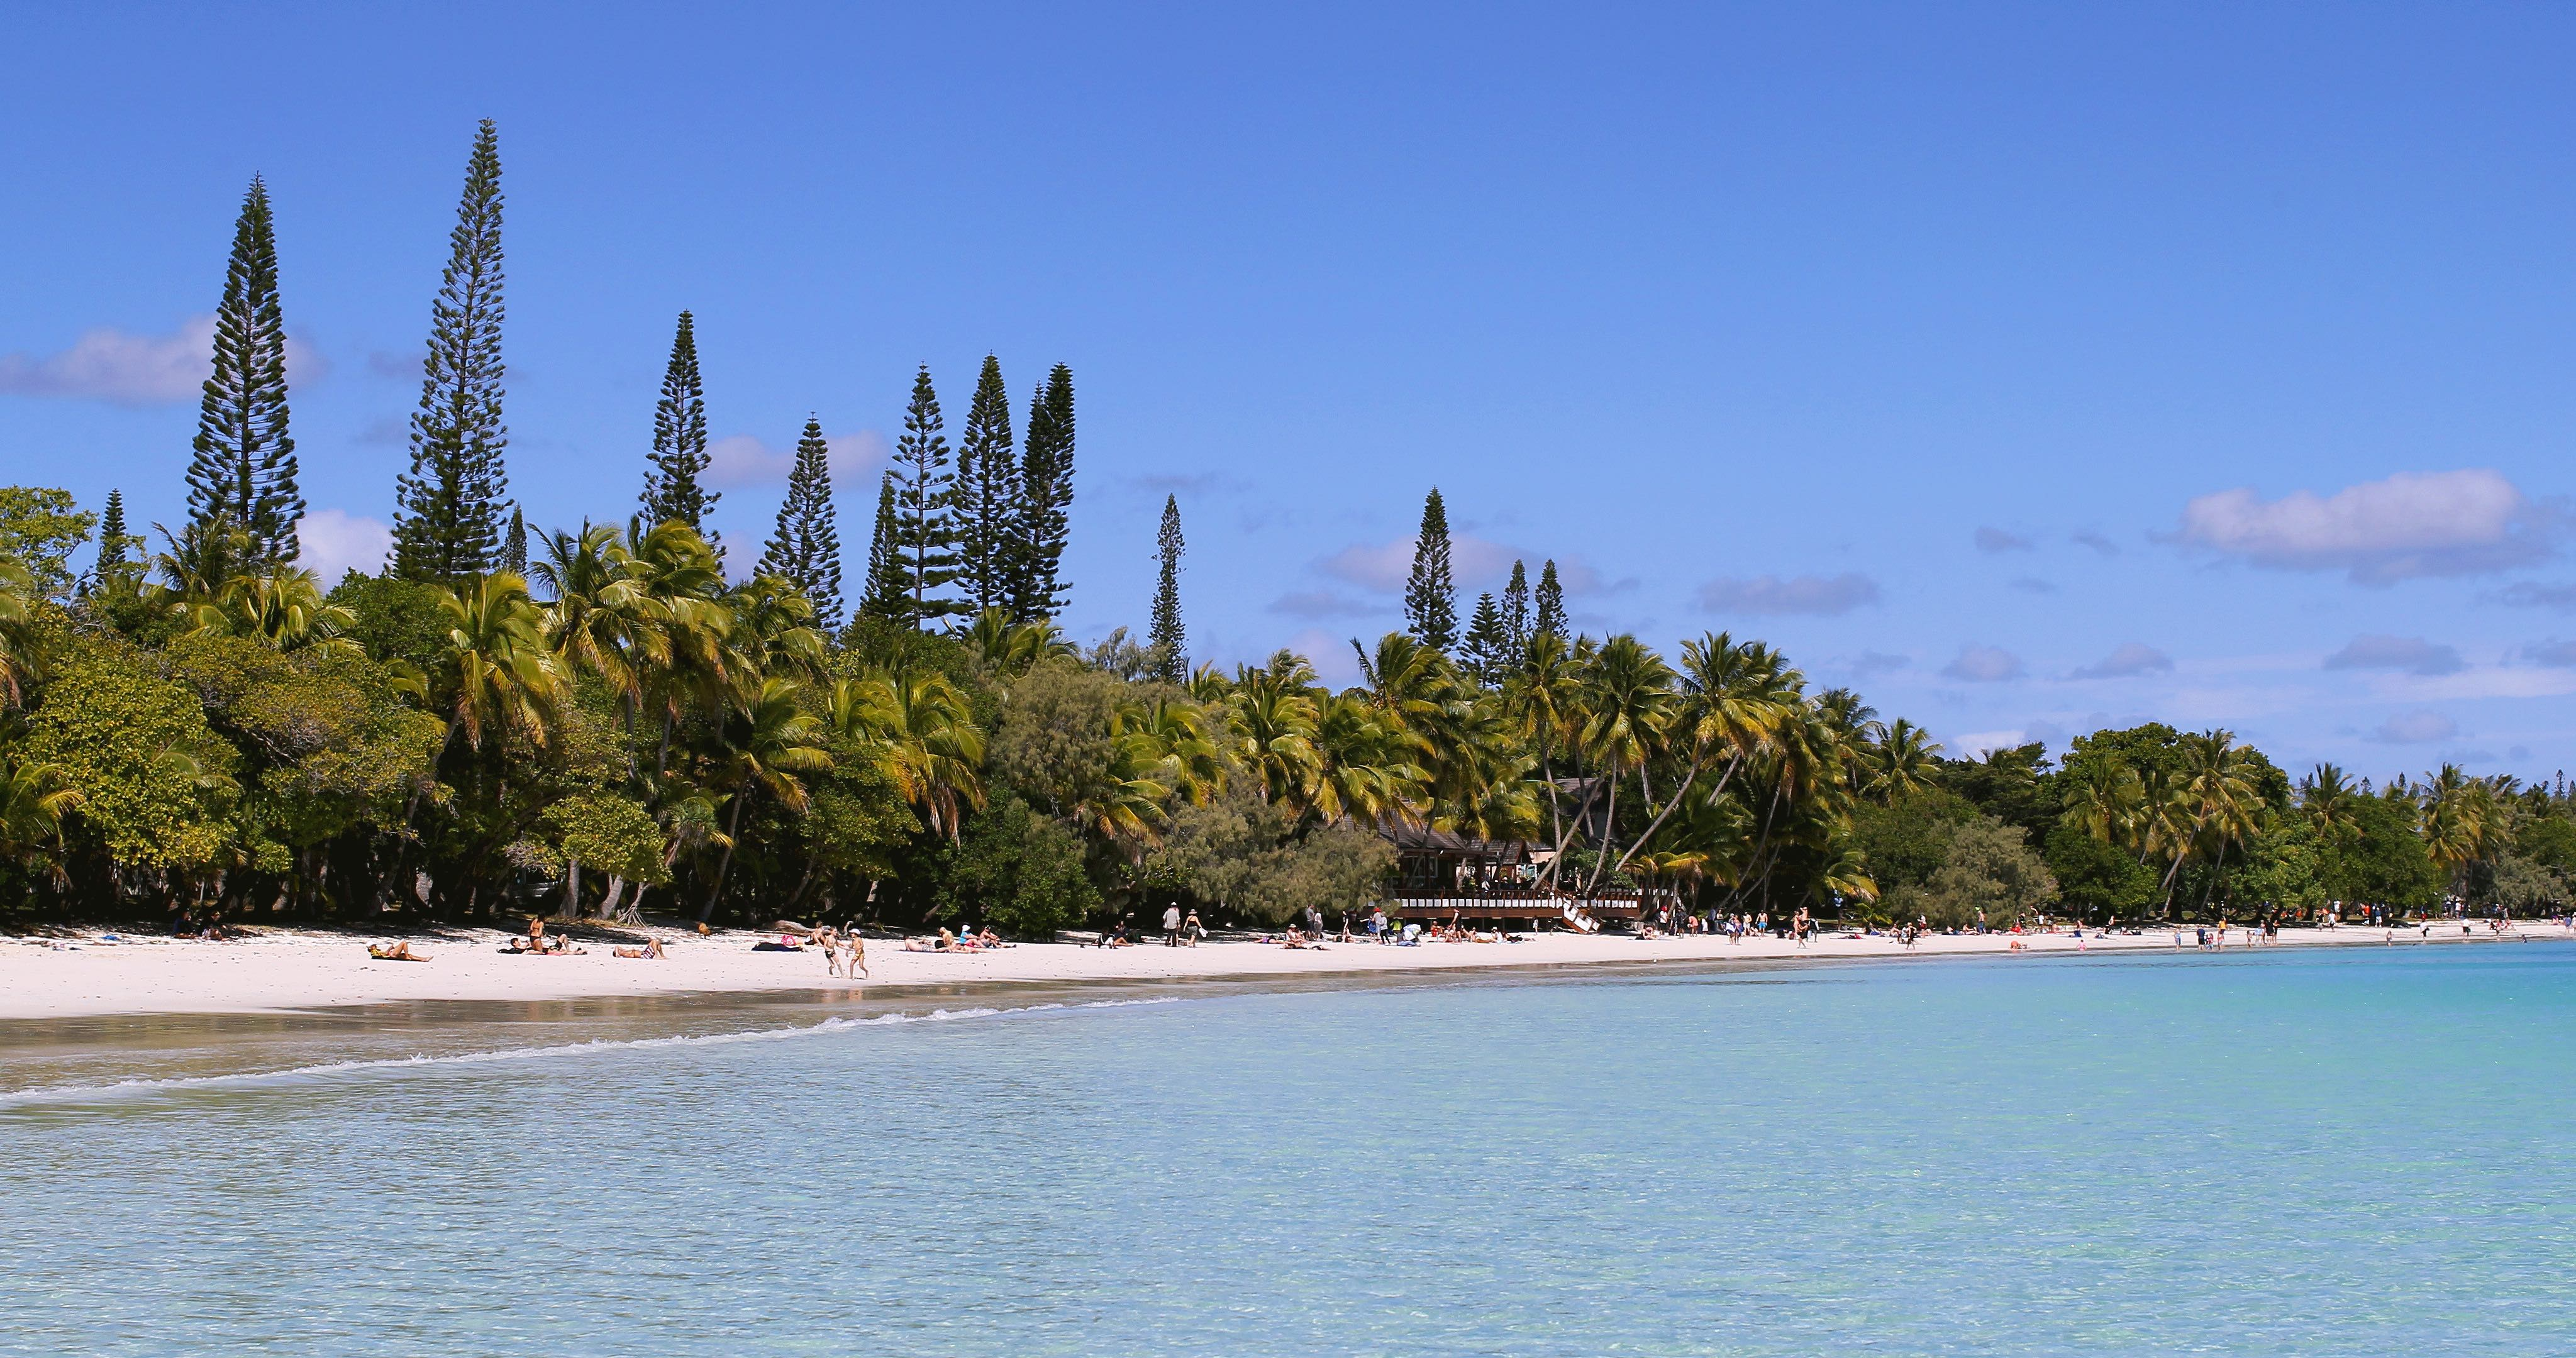 kuto-beach-isle-of-pines-new-caledonia-travelling-with-kids-3